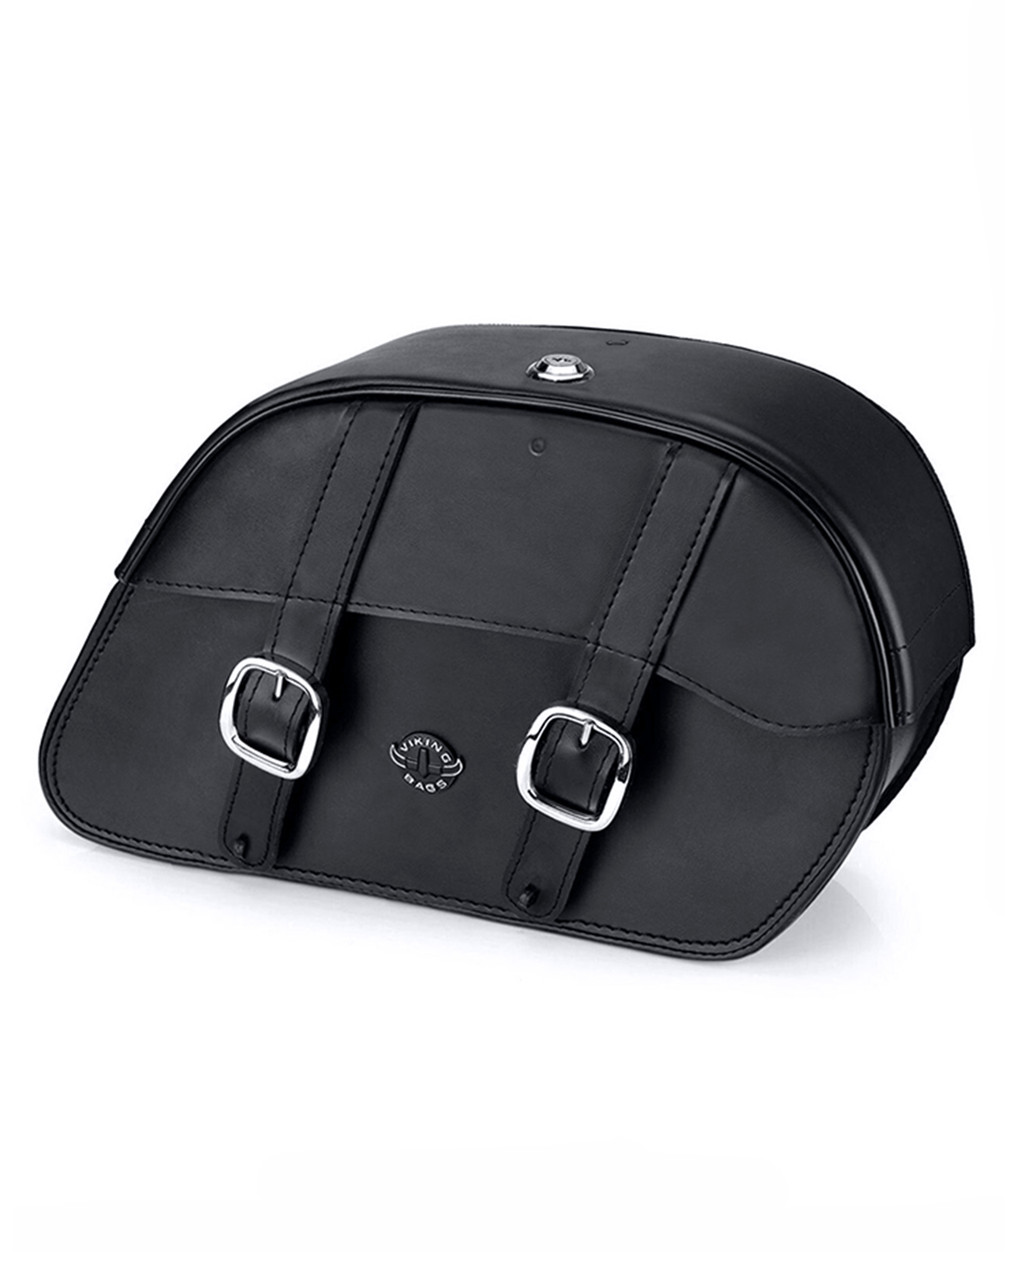 VikingBags Skarner Large Double Strap Leather Motorcycle Saddlebags For Harley Softail Custom FXSTC Main View